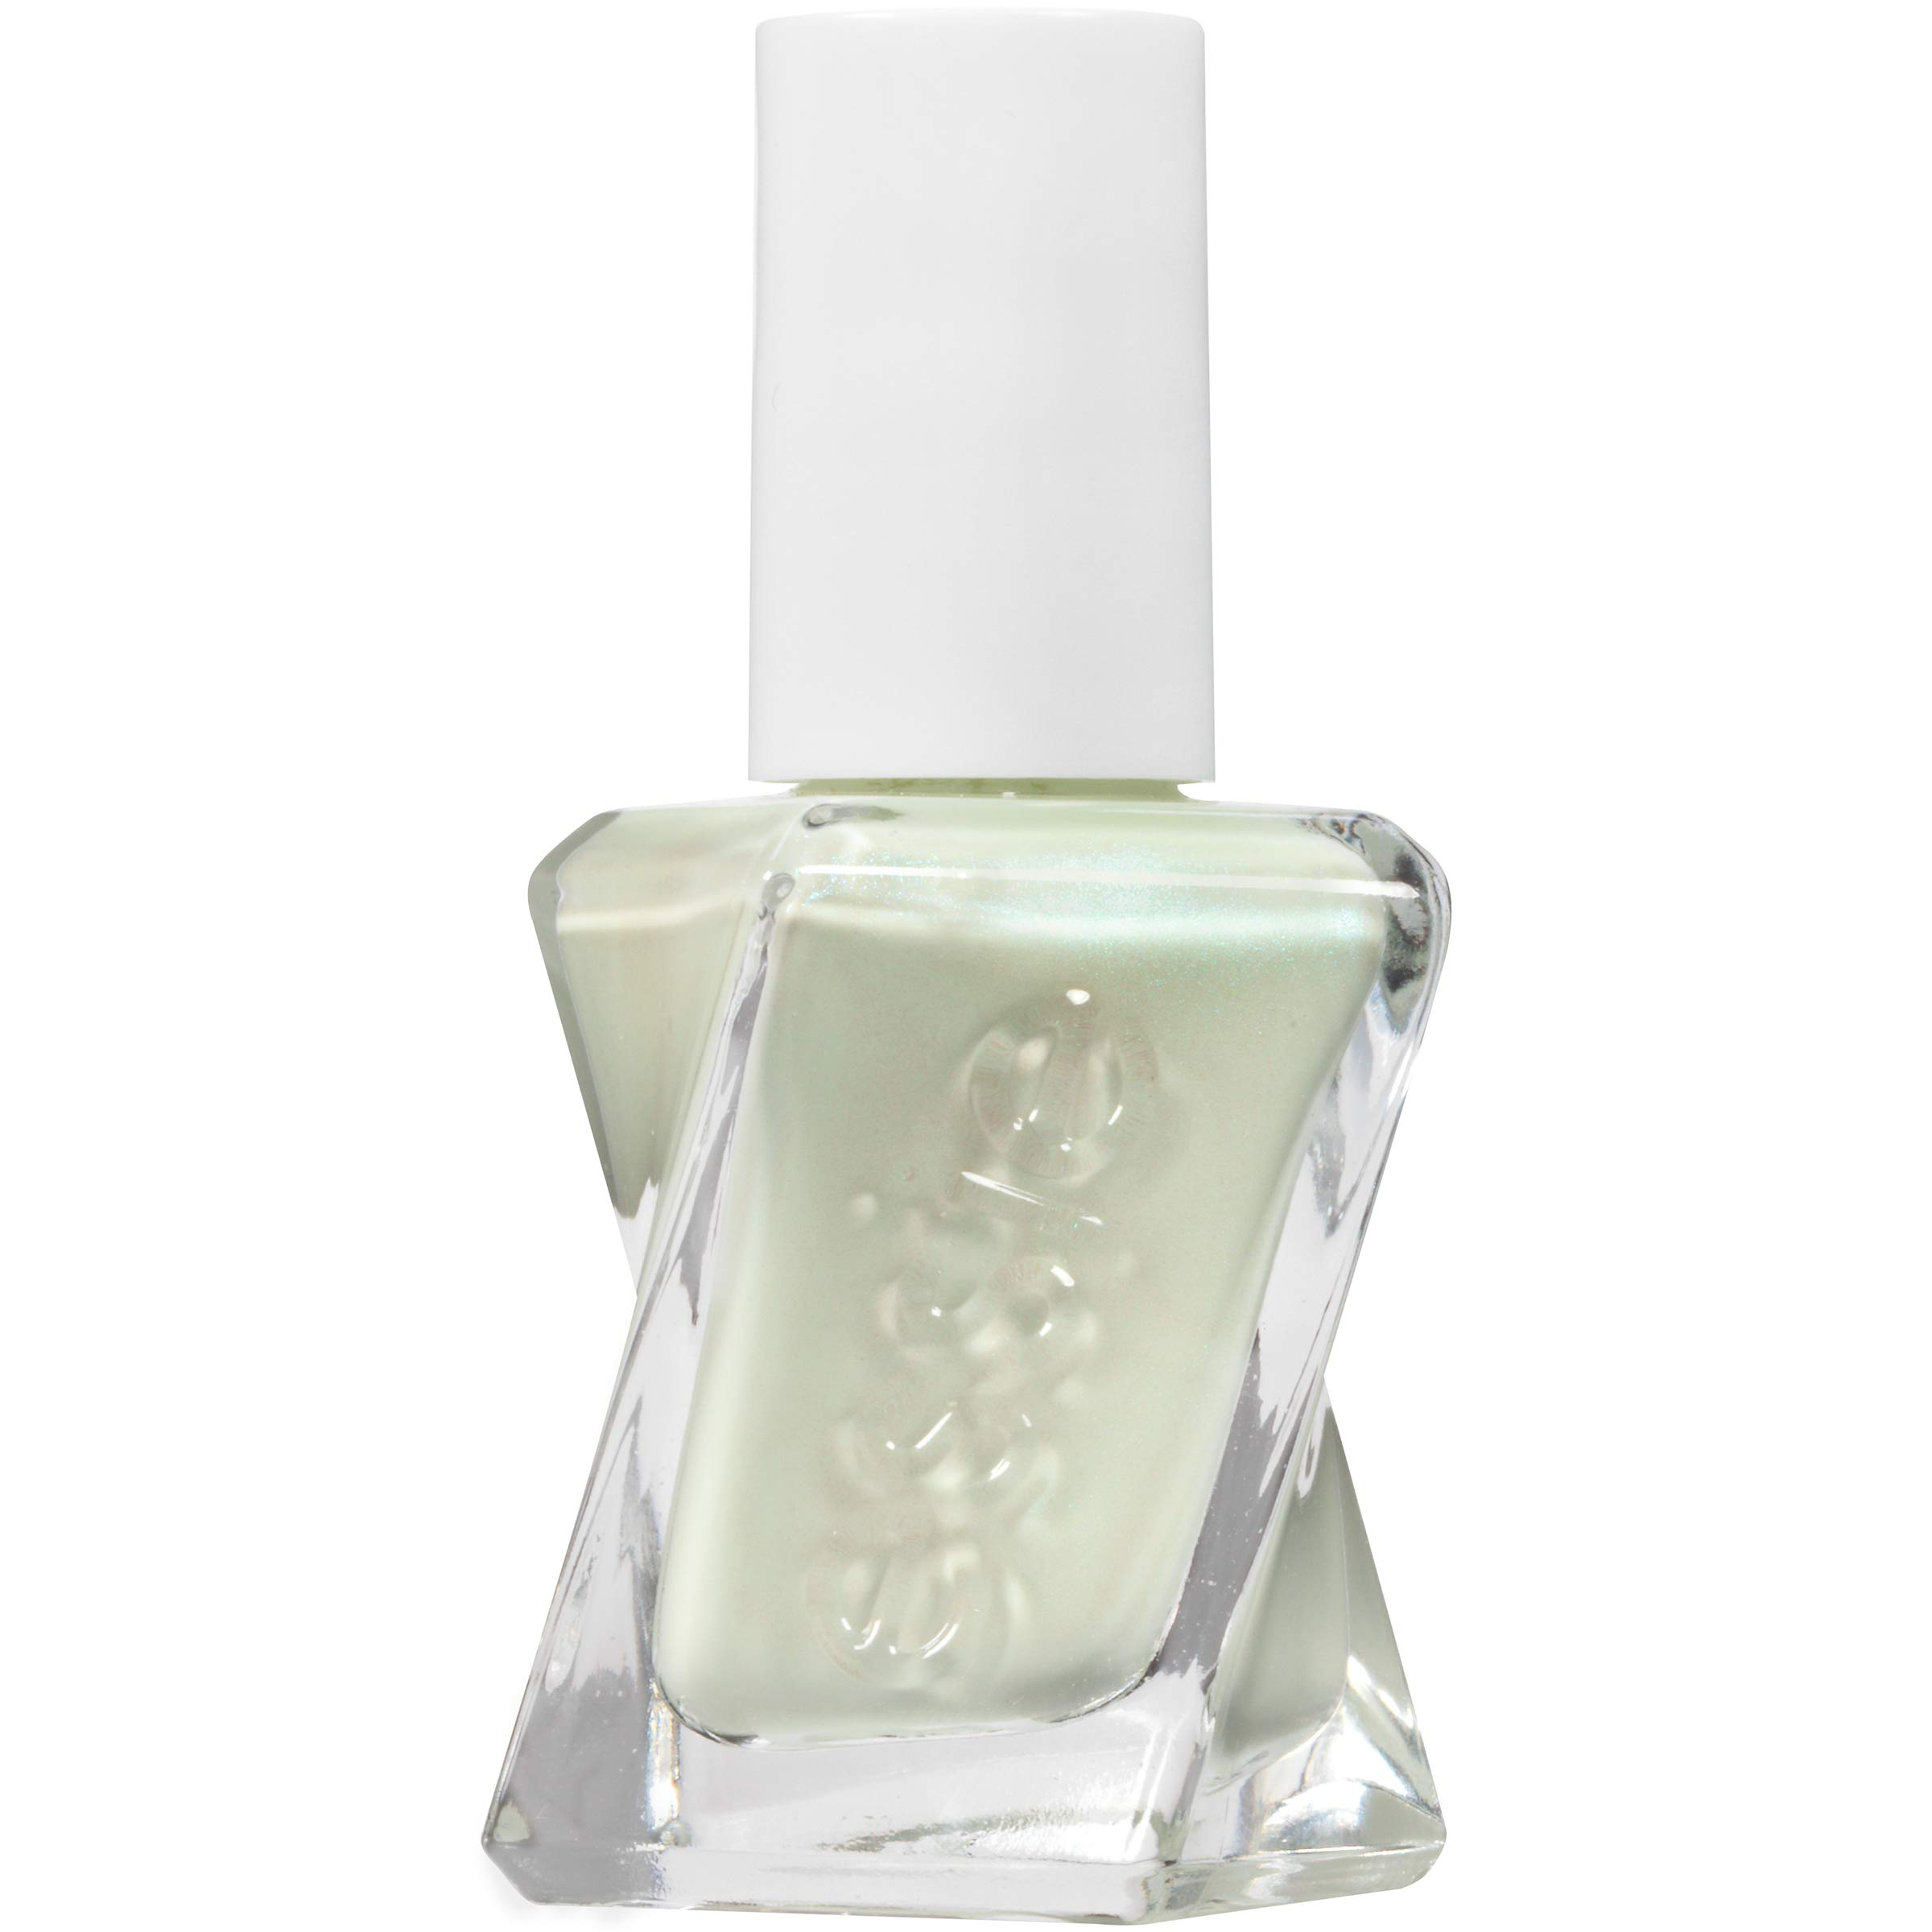 essie Gel Couture 2-Step Longwear Nail Polish, Zip Me Up, Mint Green Nail Polish, 0.46 fl. oz.